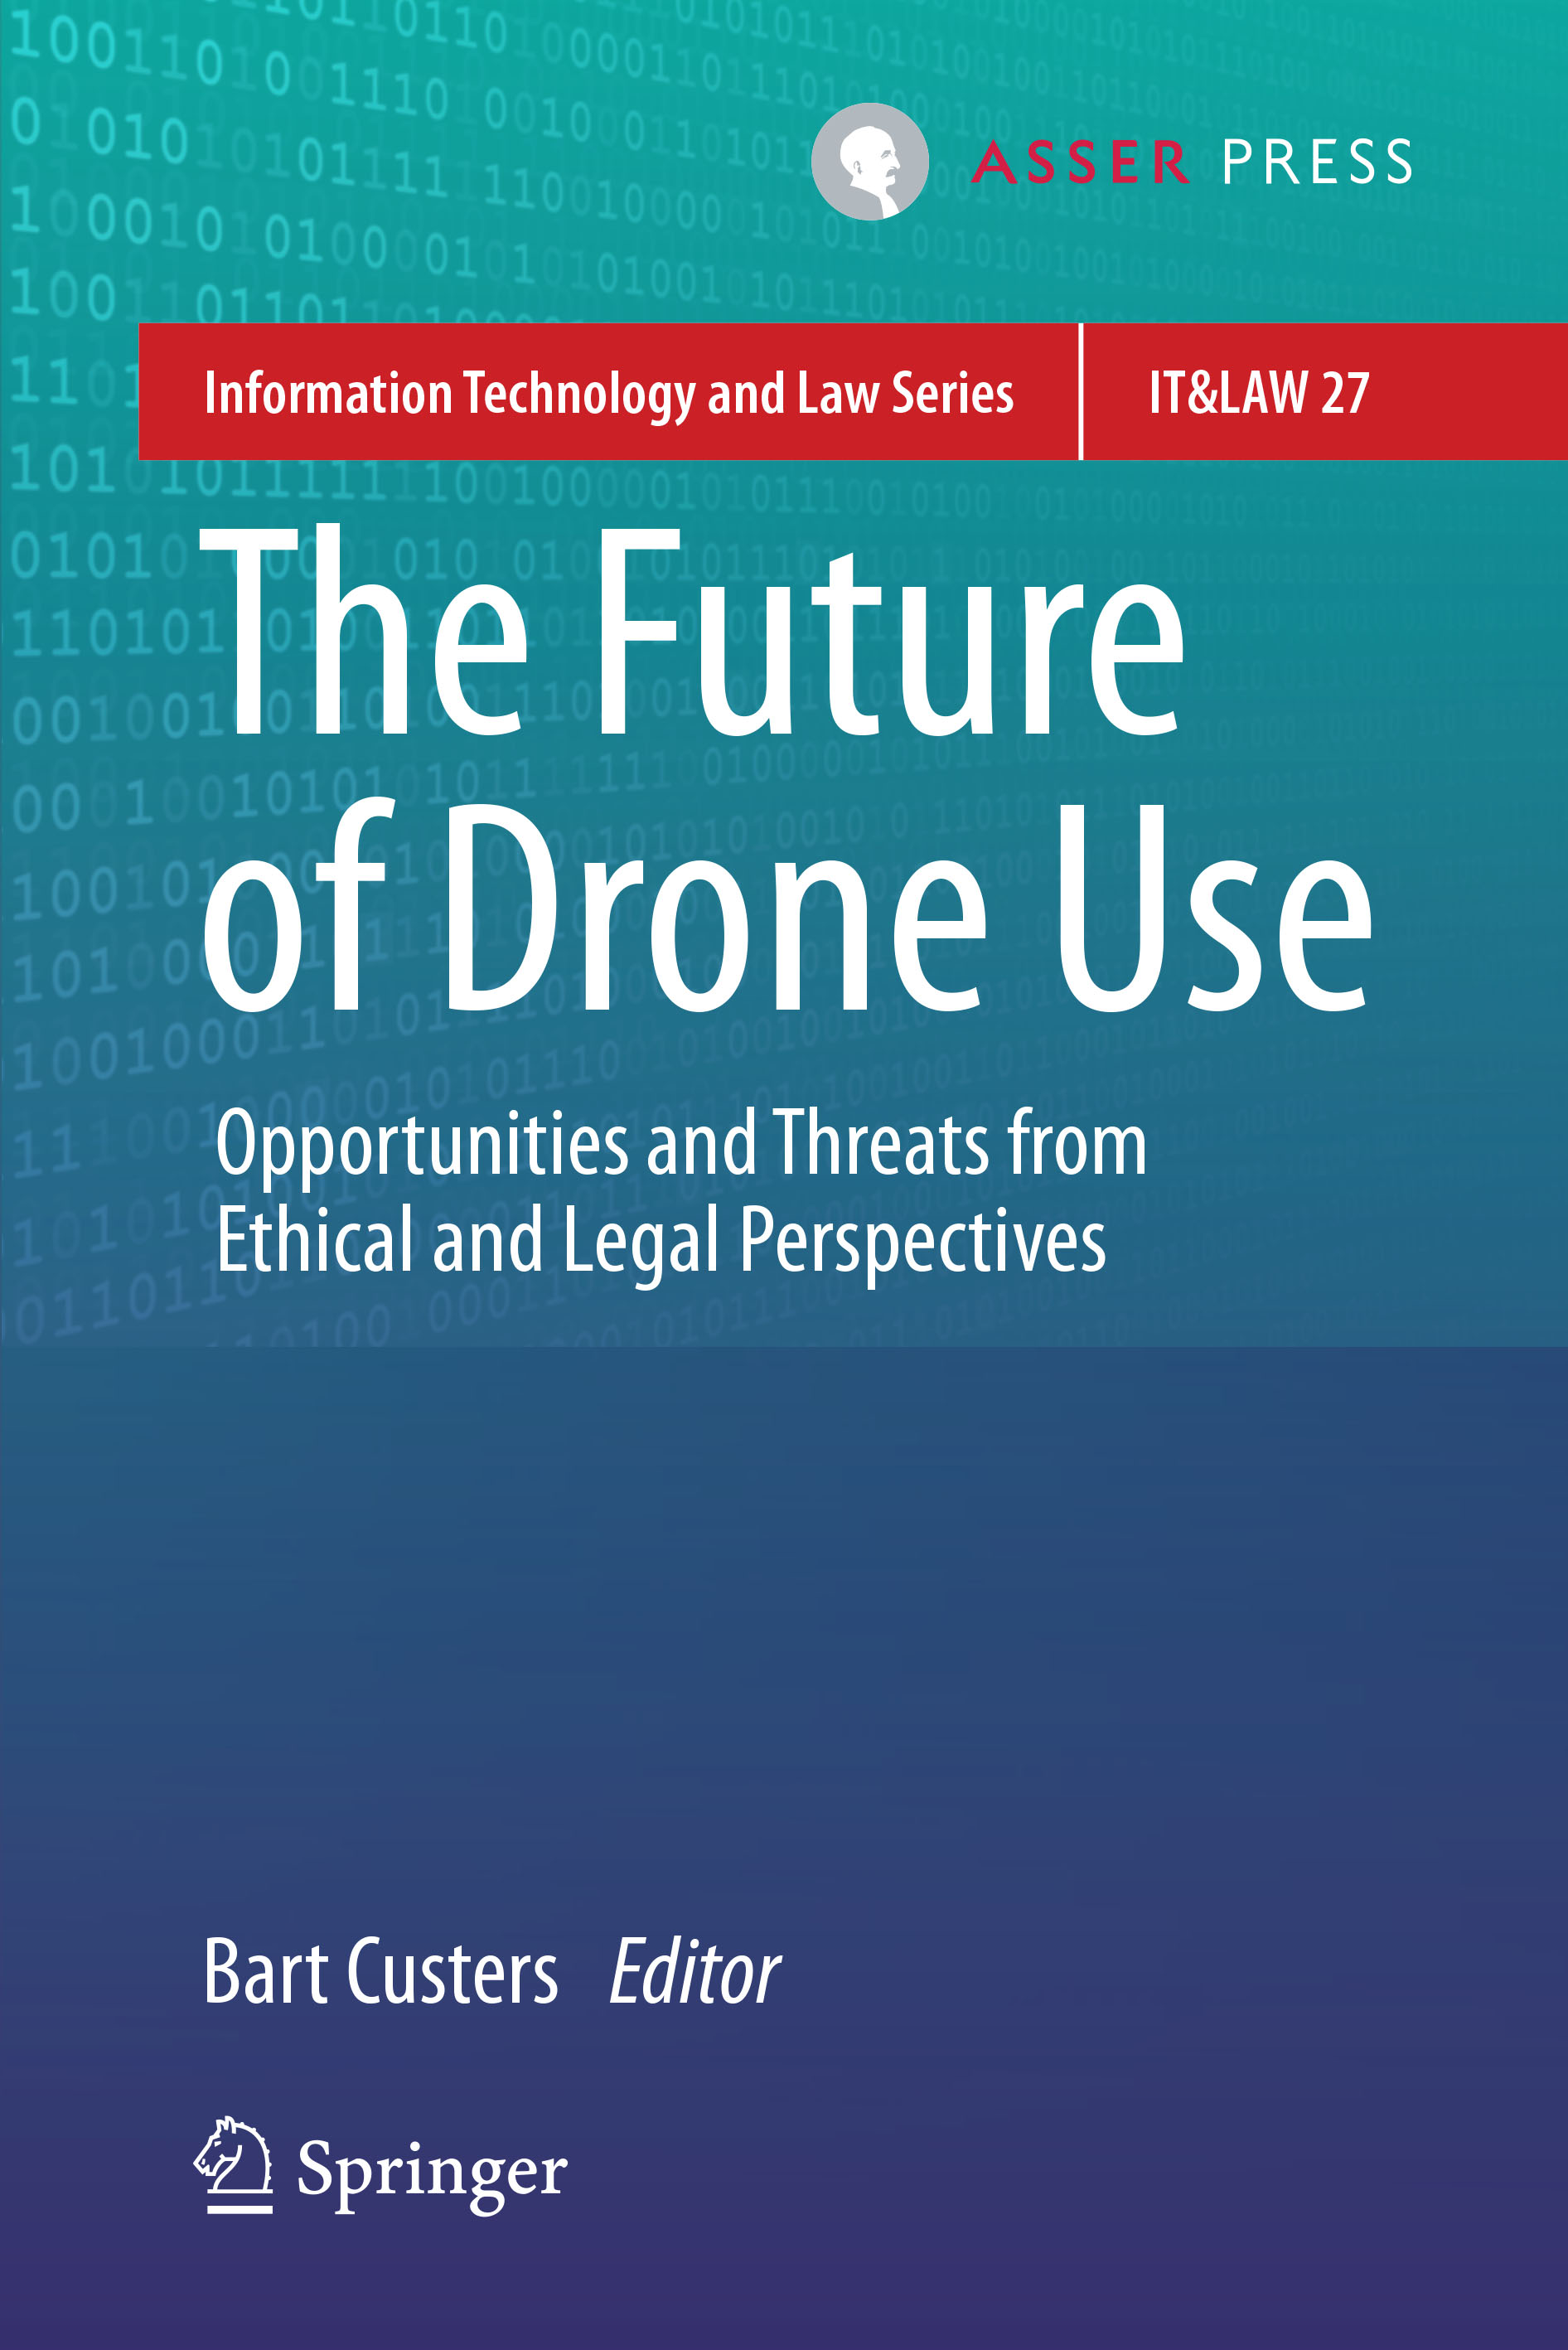 The Future of Drone Use - Opportunities and Threats From Ethical and Legal Perspectives